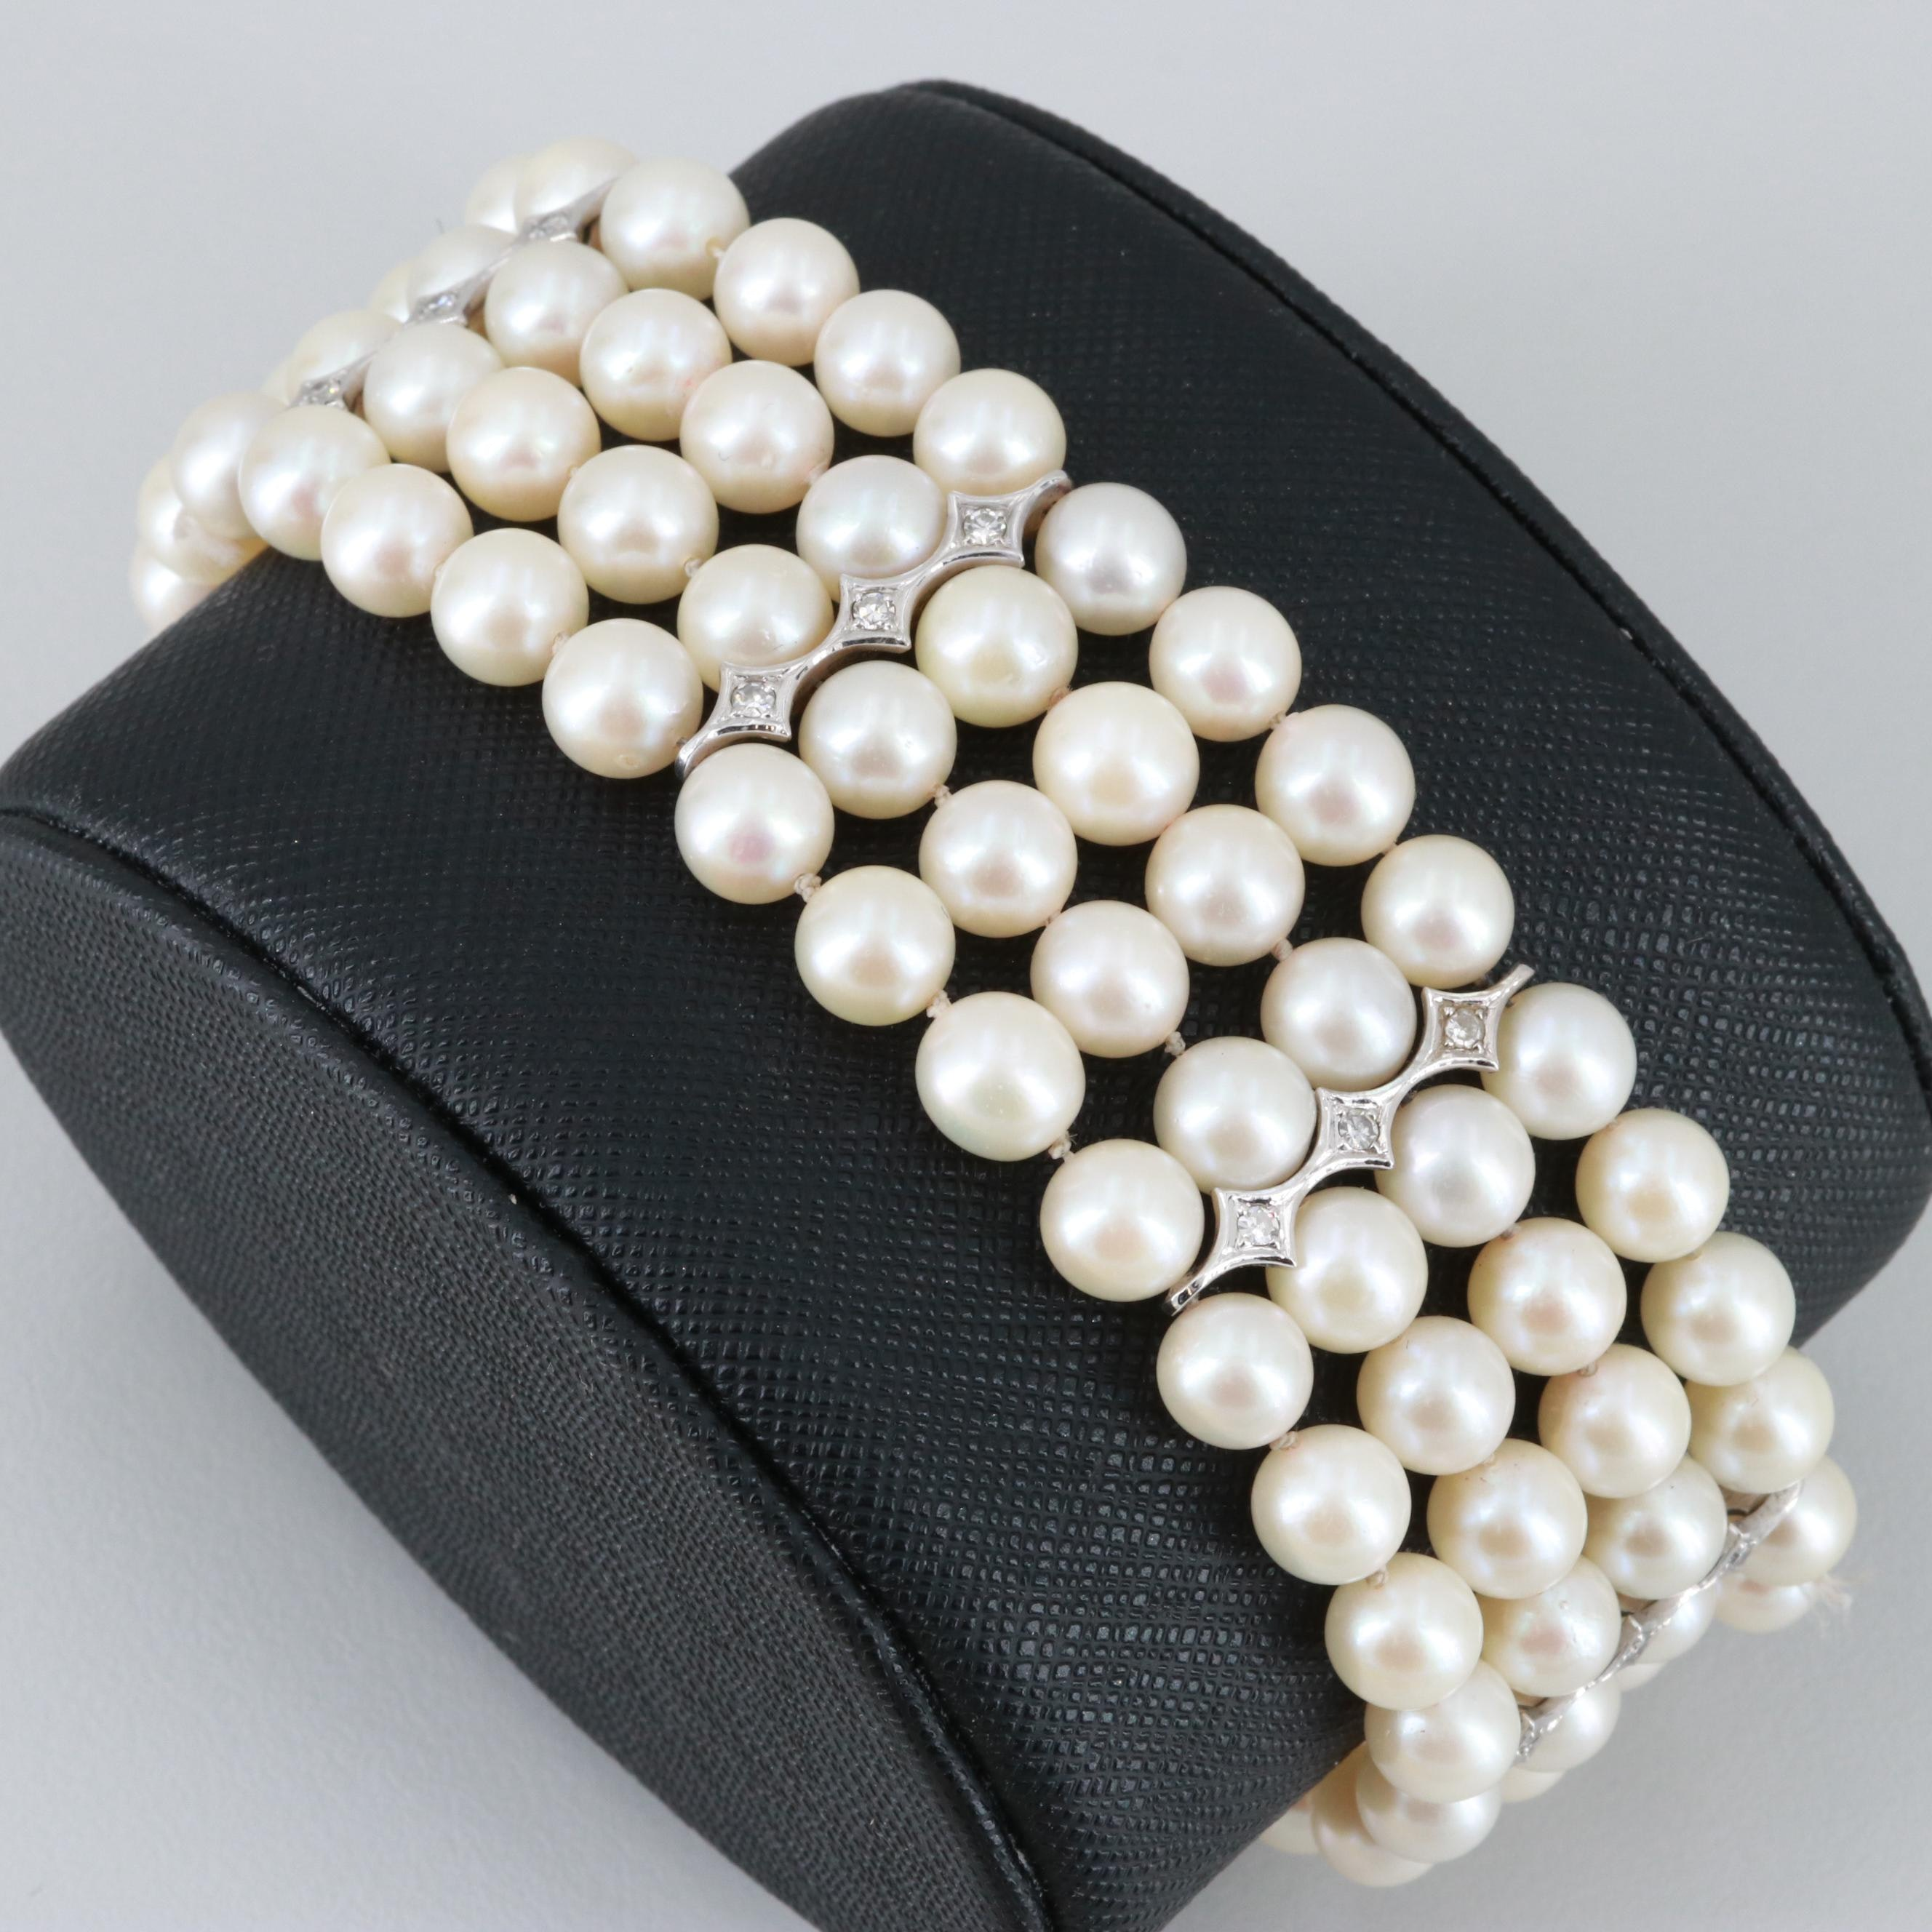 Circa 1950s 14K White Gold Cultured Pearl and Diamond Bracelet